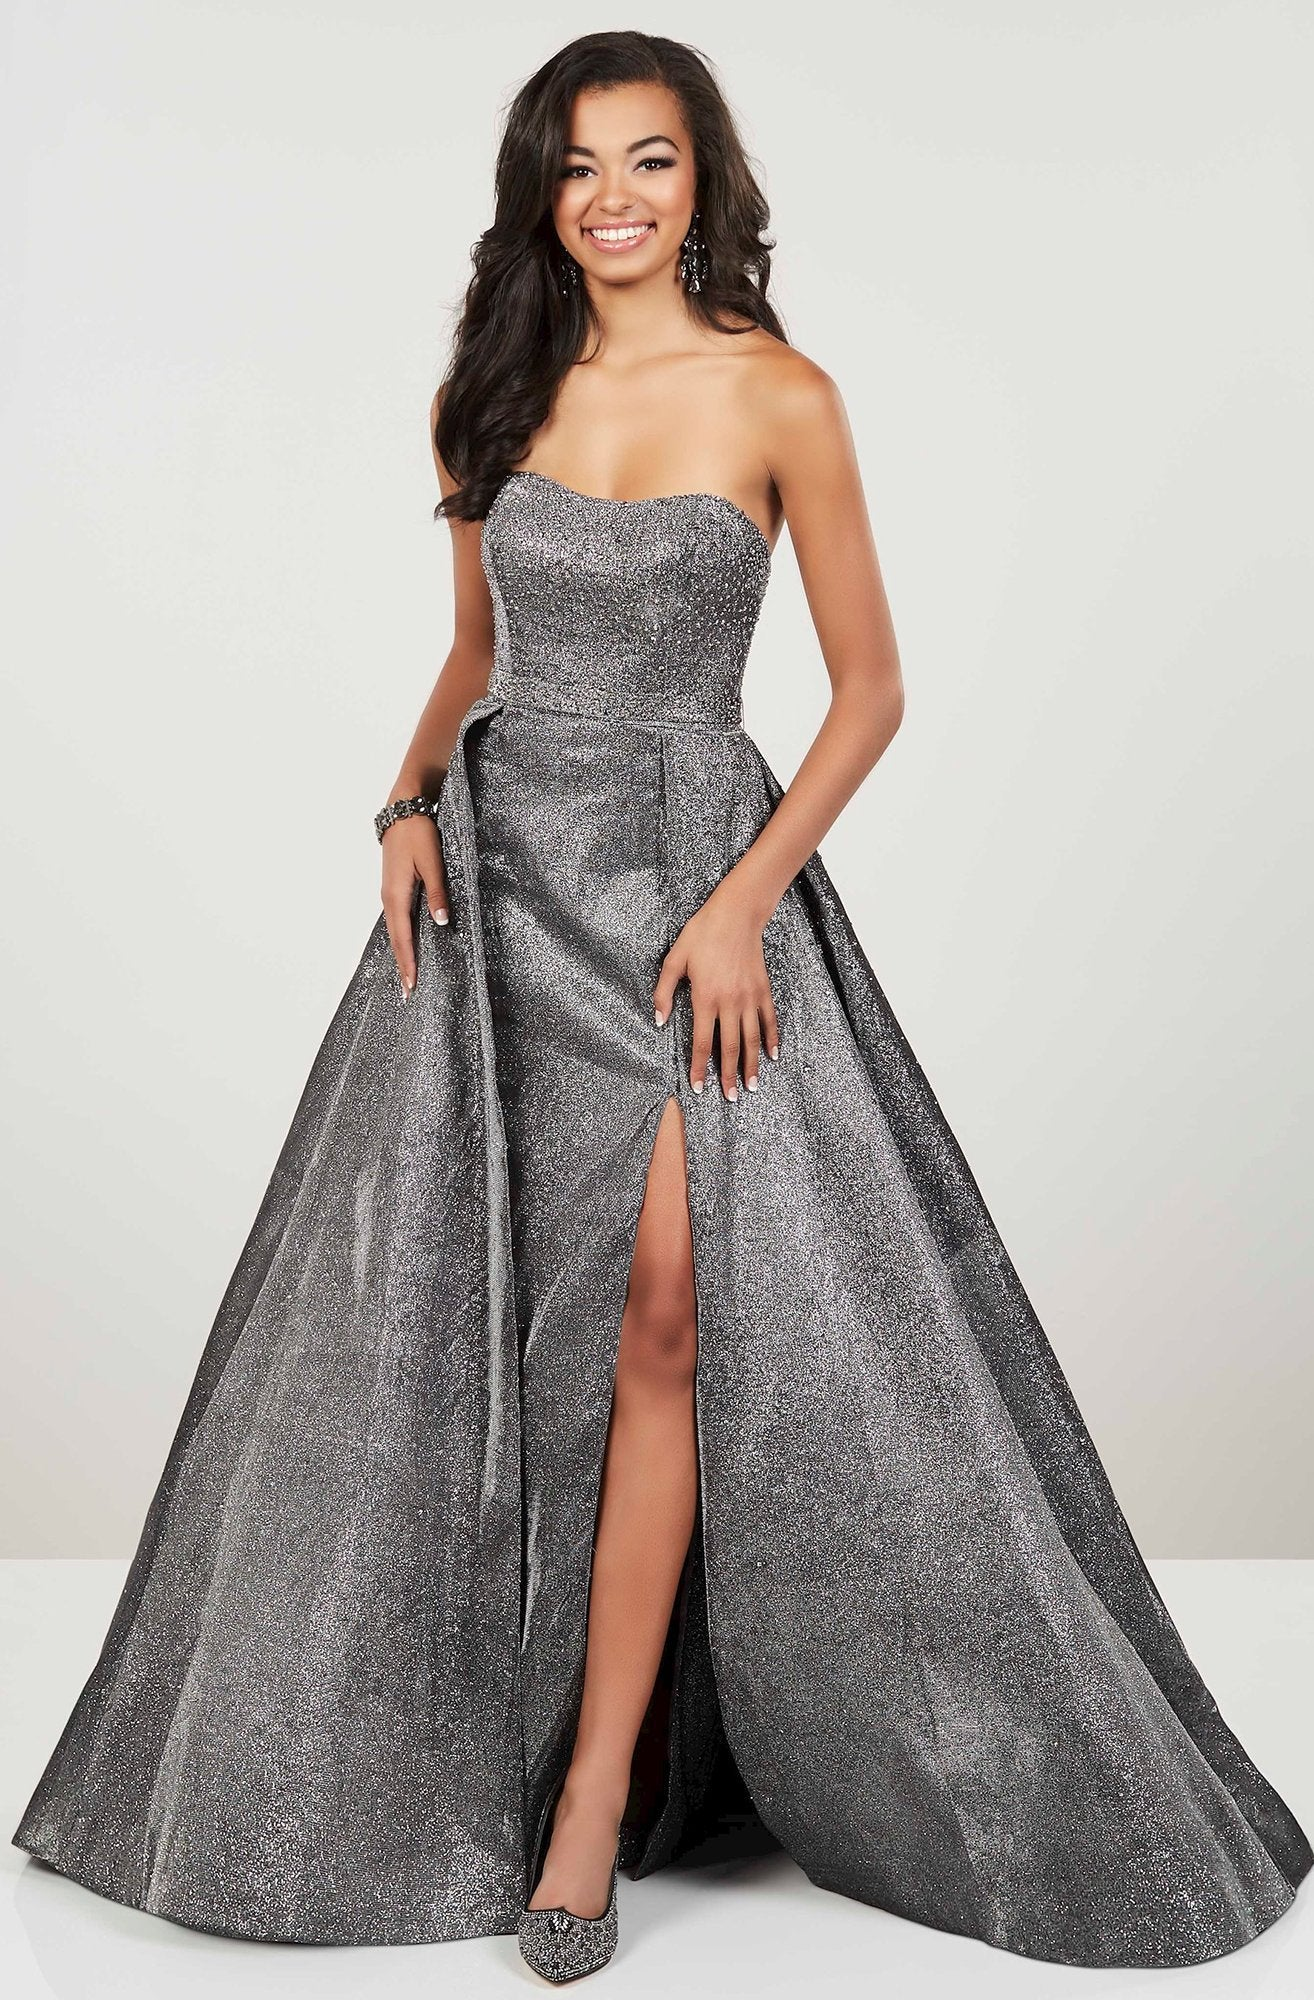 Panoply - 14943SC Strapless Jeweled Metallic Overskirt Gown